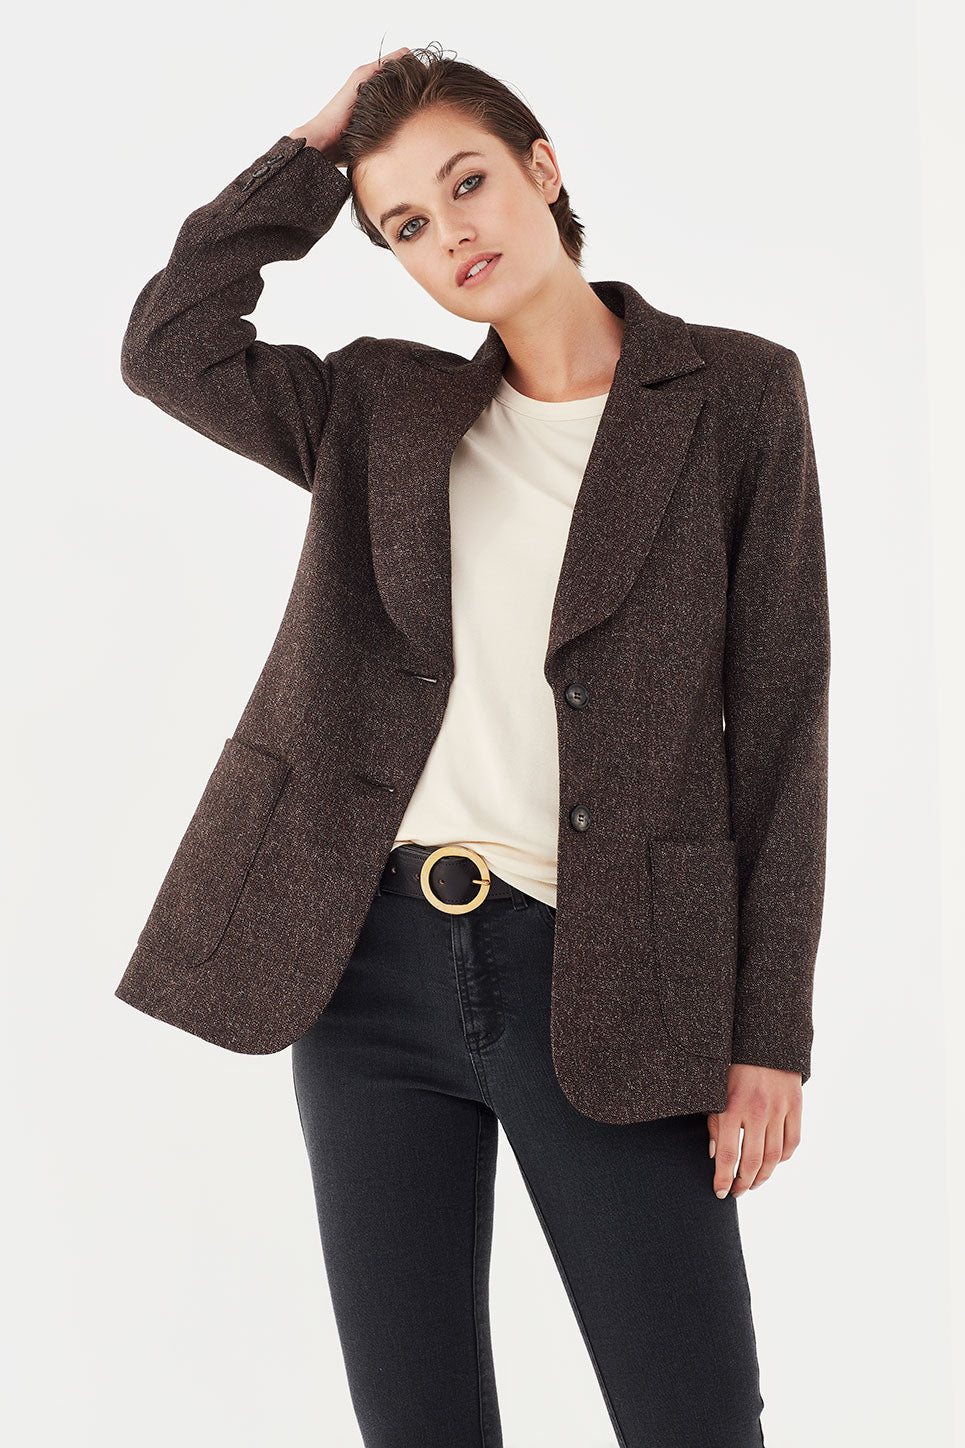 The Asher Jacket in Chocolate Tweed